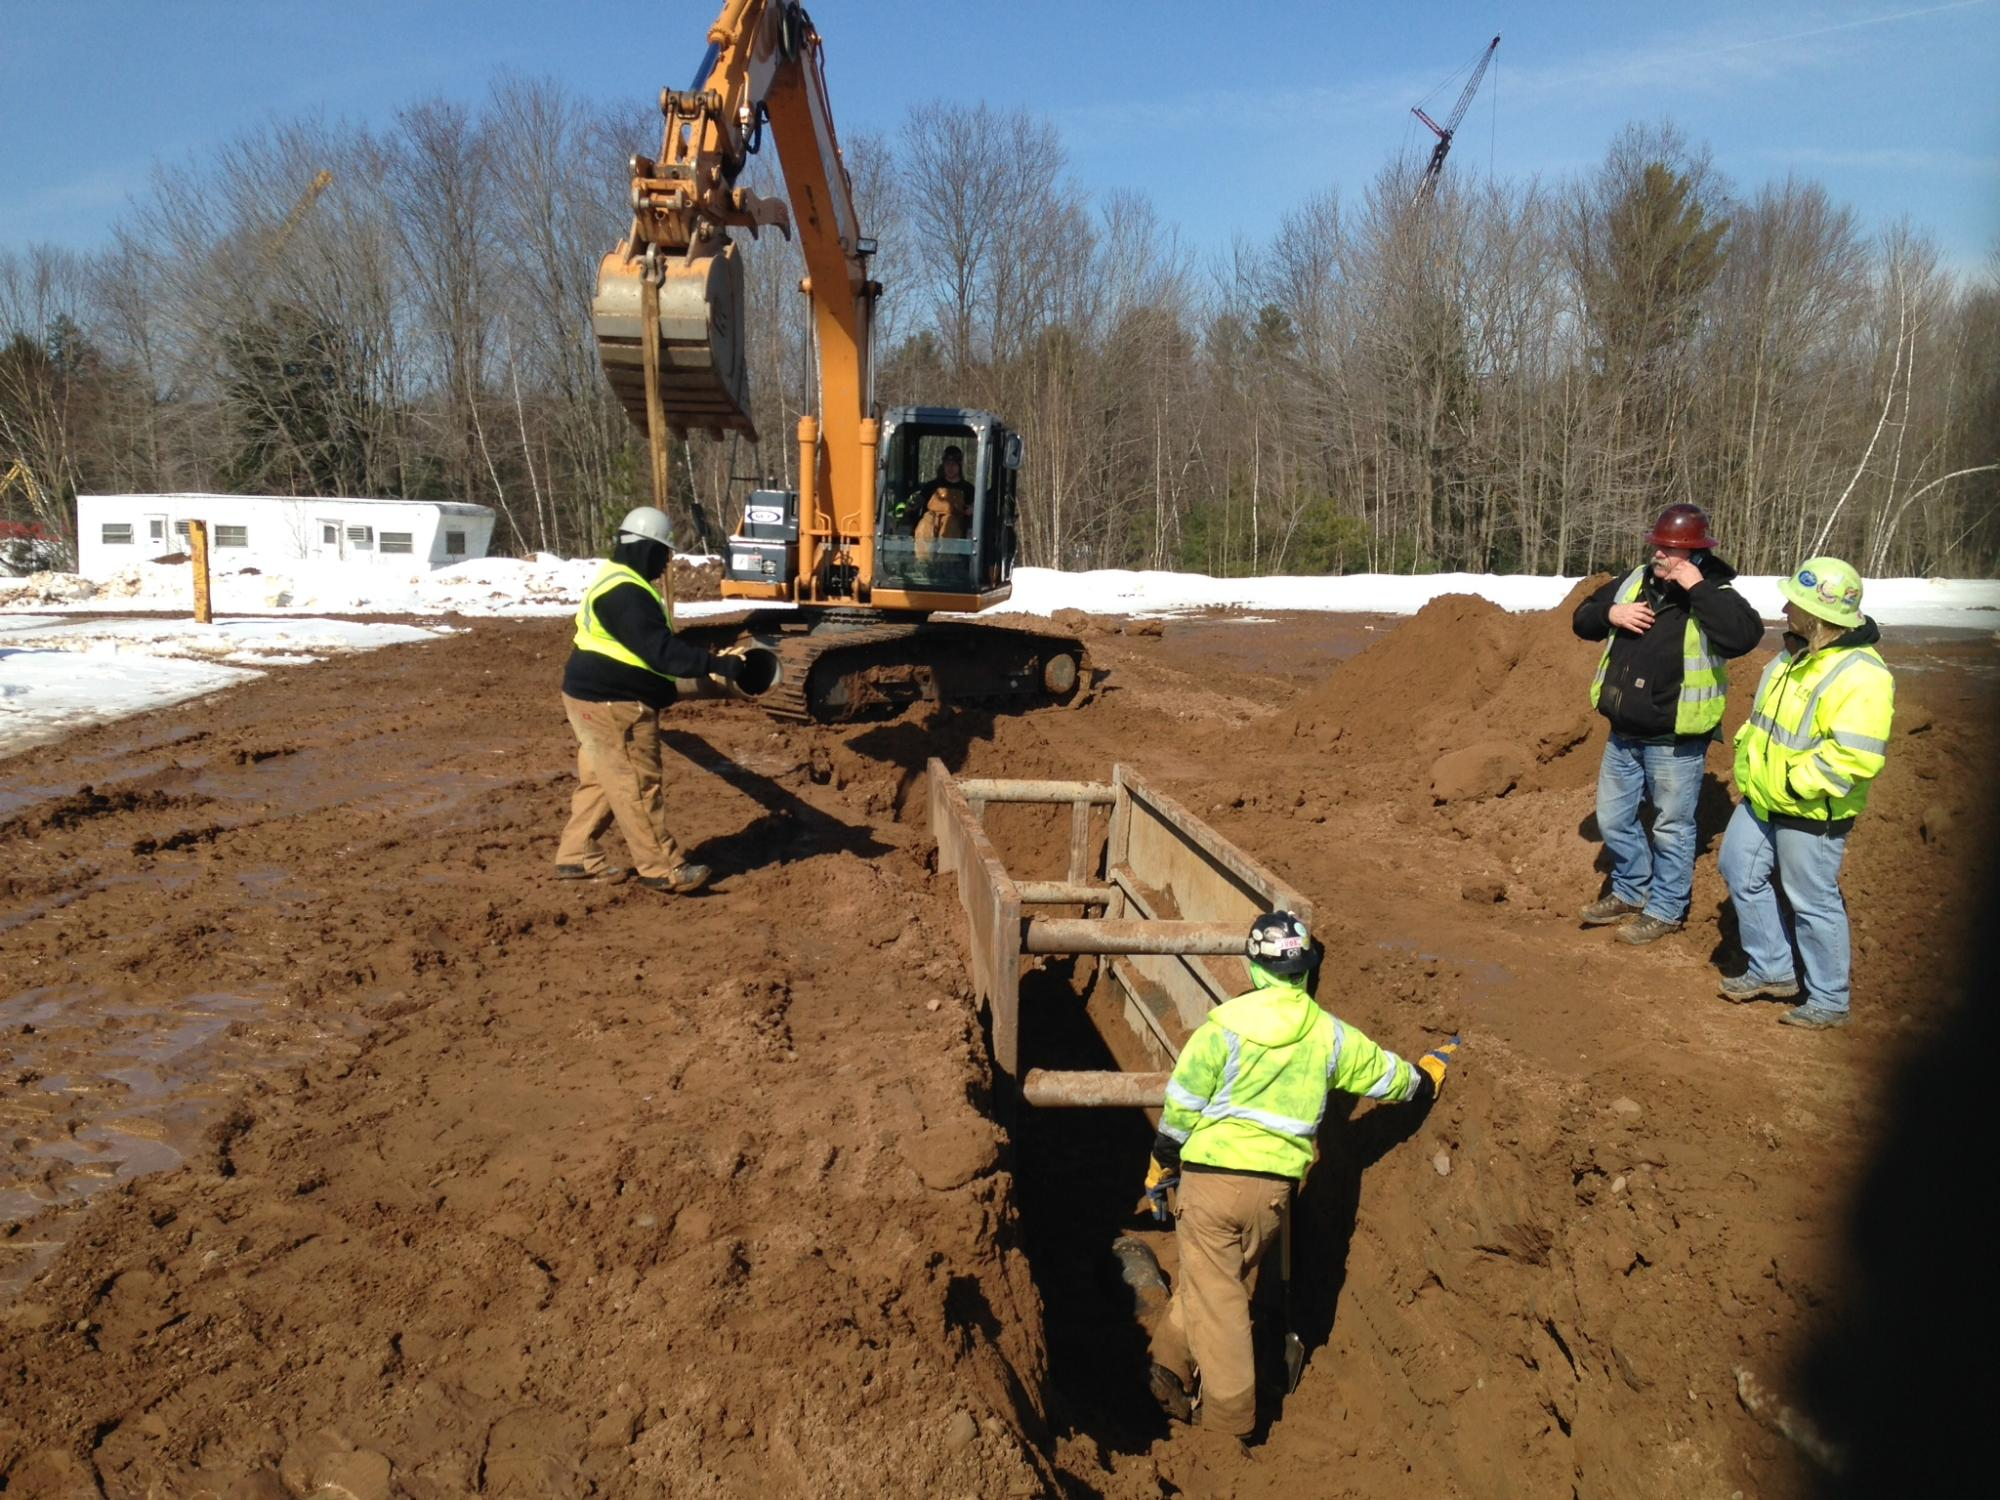 Excavation & Trenching